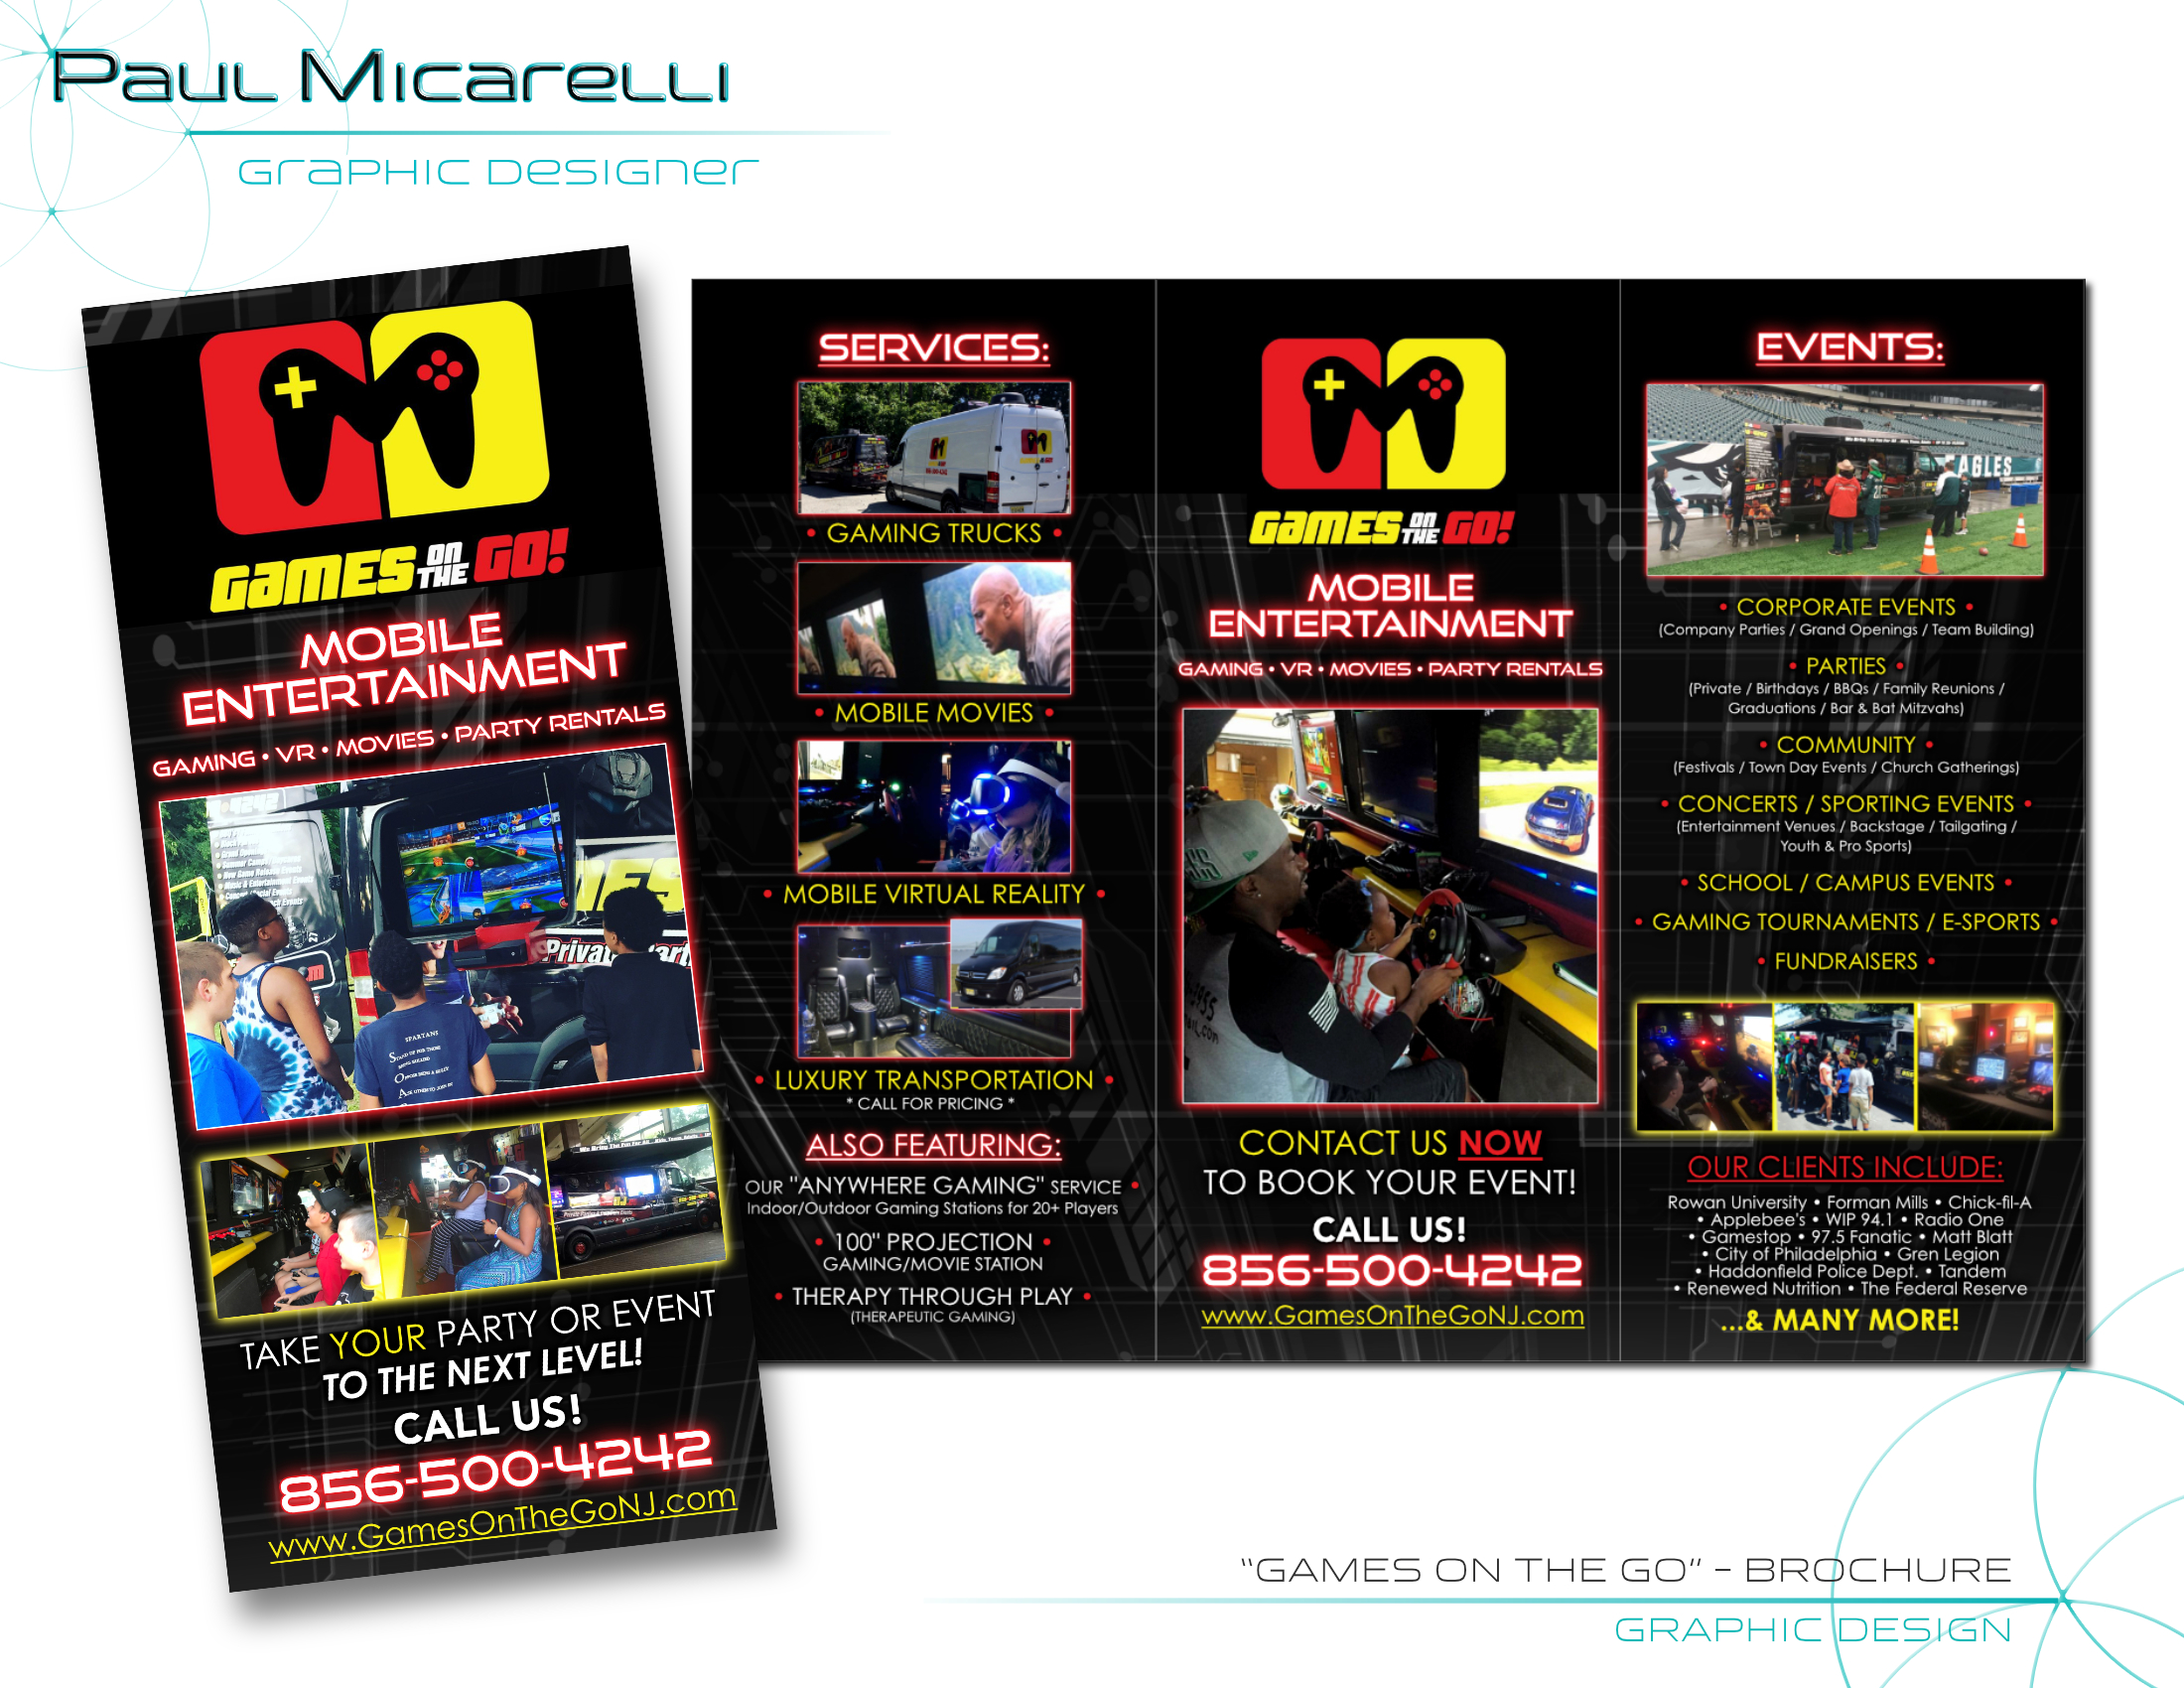 Paul-Micarelli-Games on the Go Brochure.